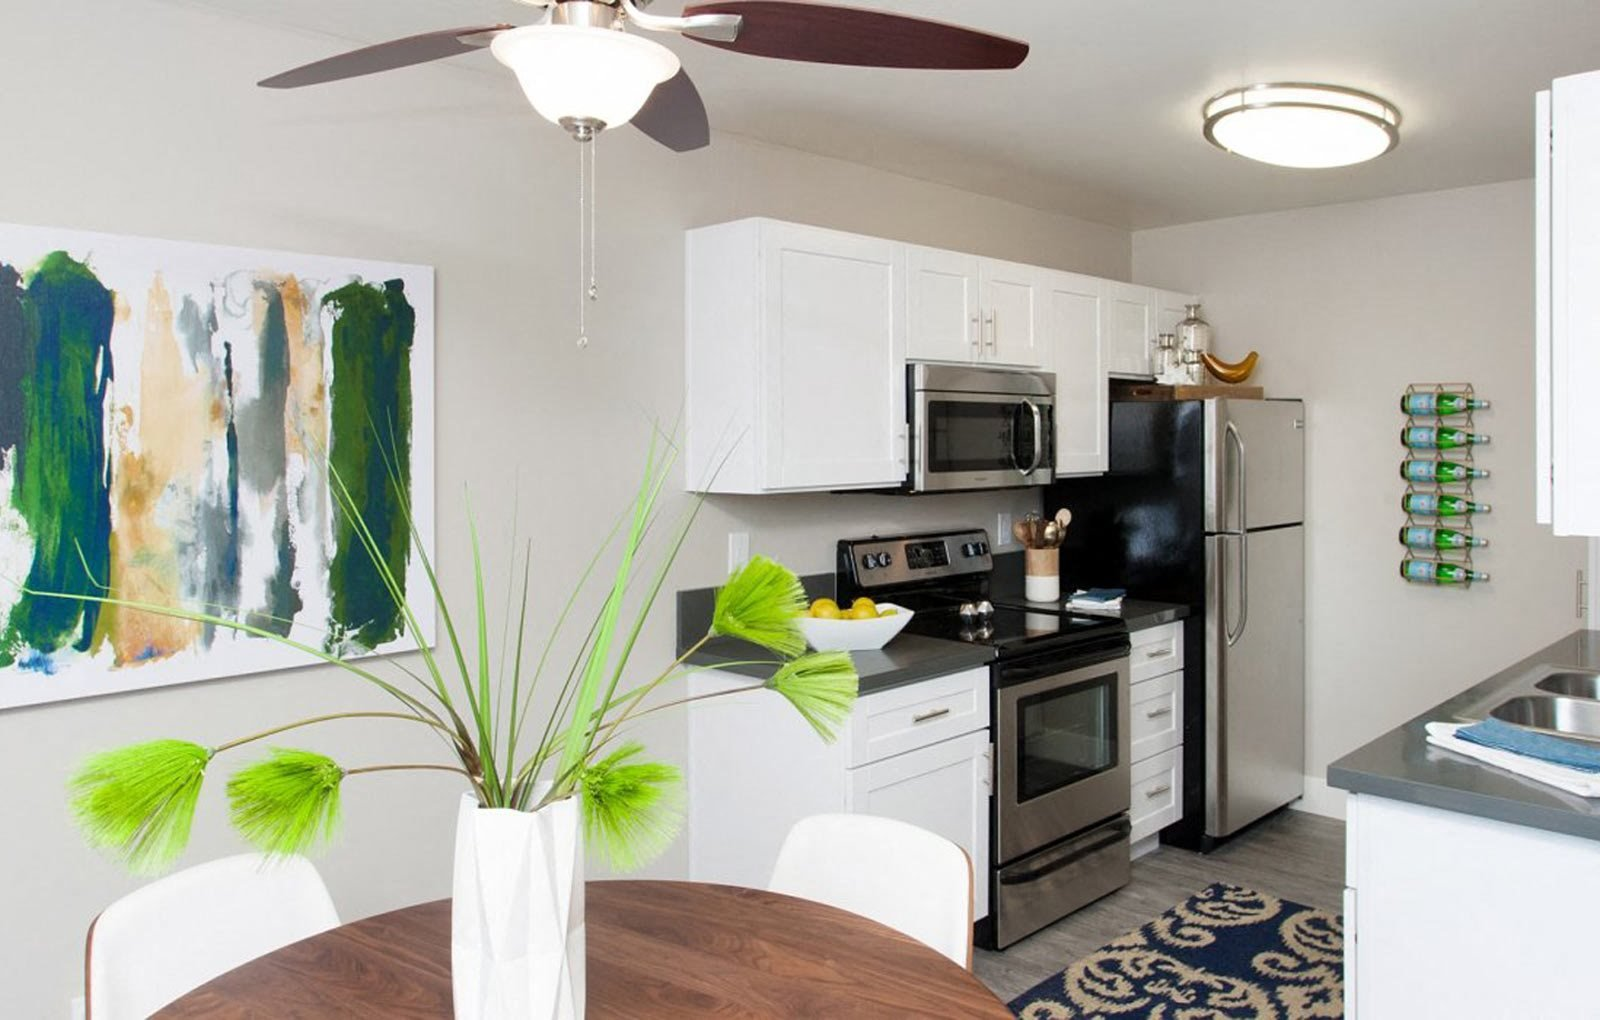 Kitchen and dining area| Stoneridge Luxury Apartments in Walnut Creek, CA